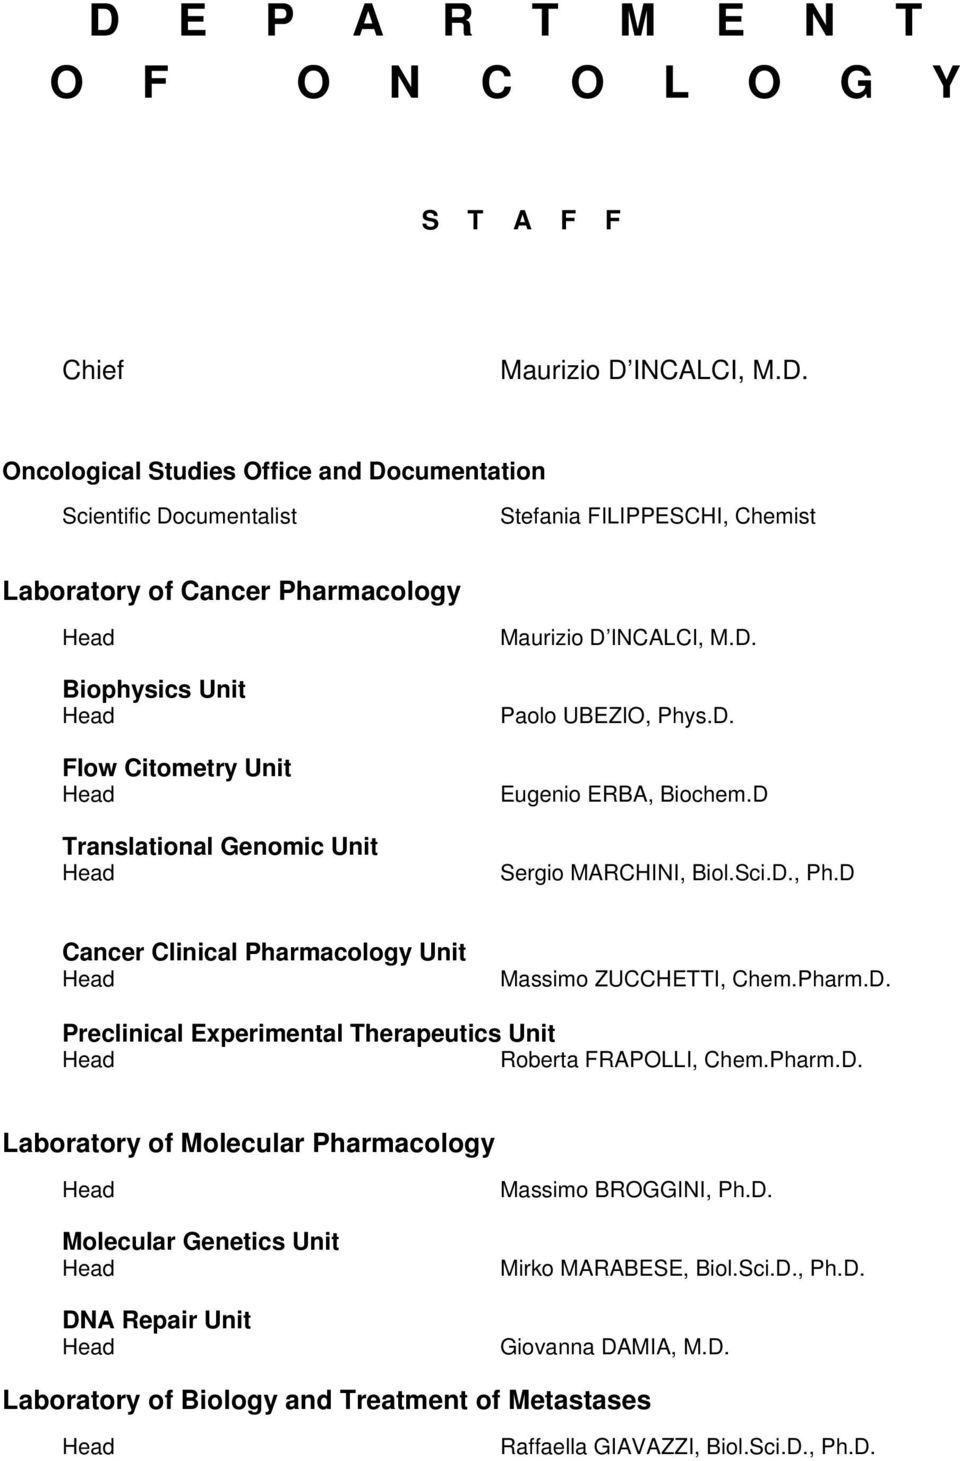 D., Ph.D Cancer Clinical Pharmacology Unit Head Massimo ZUCCHETTI, Chem.Pharm.D. Preclinical Experimental Therapeutics Unit Head Roberta FRAPOLLI, Chem.Pharm.D. Laboratory of Molecular Pharmacology Head Molecular Genetics Unit Head DNA Repair Unit Head Massimo BROGGINI, Ph.